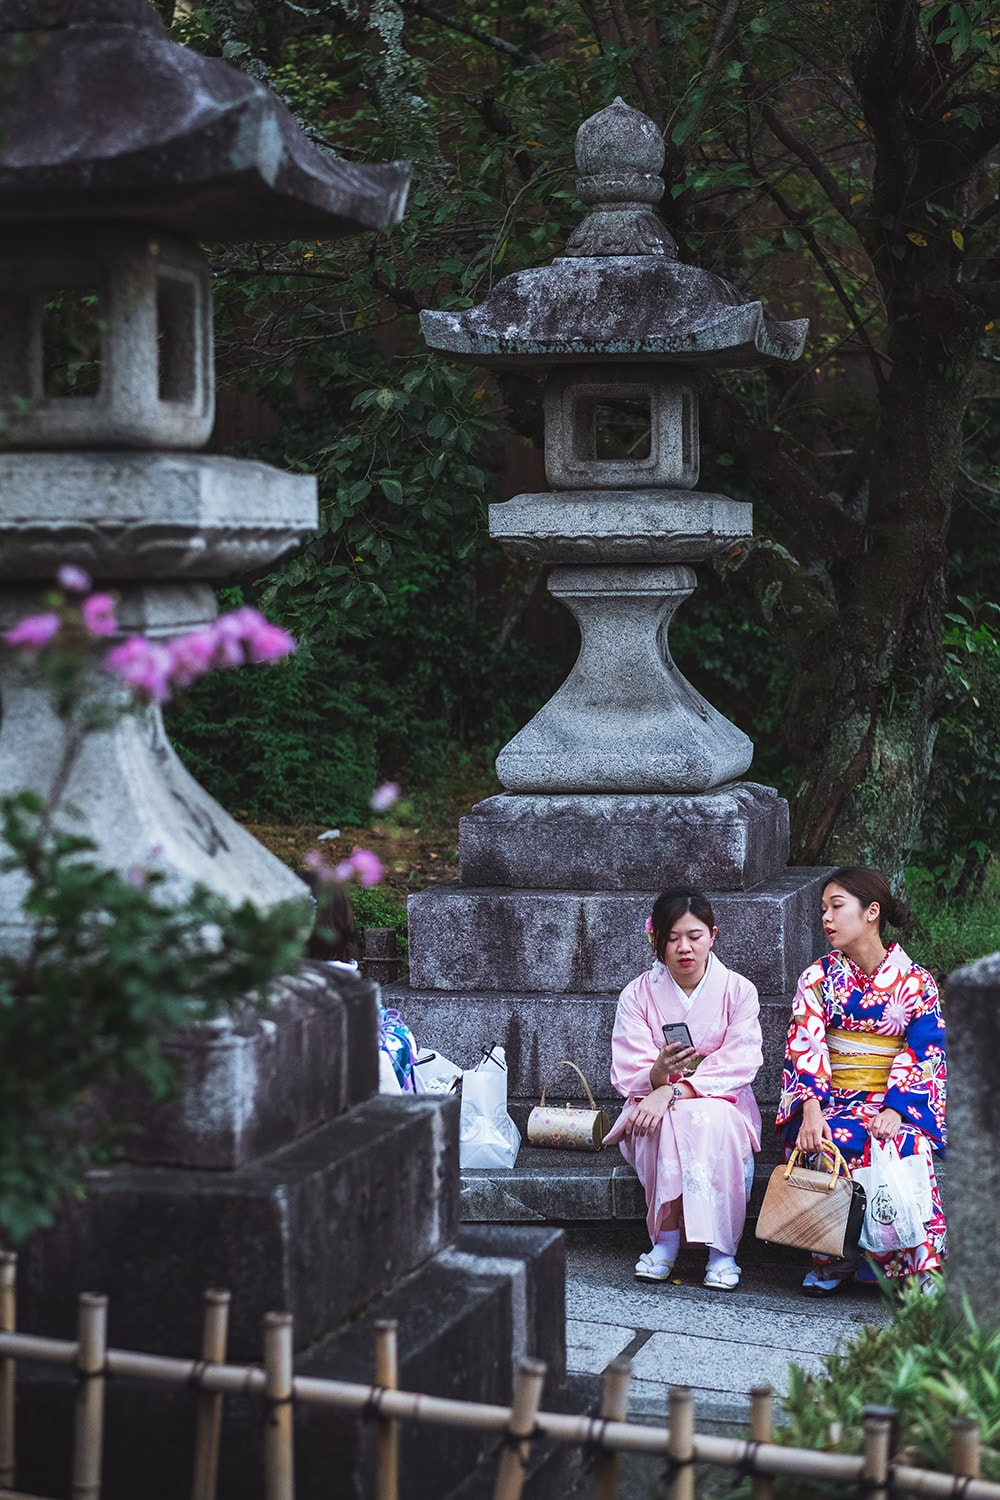 women wearing kimonos sitting